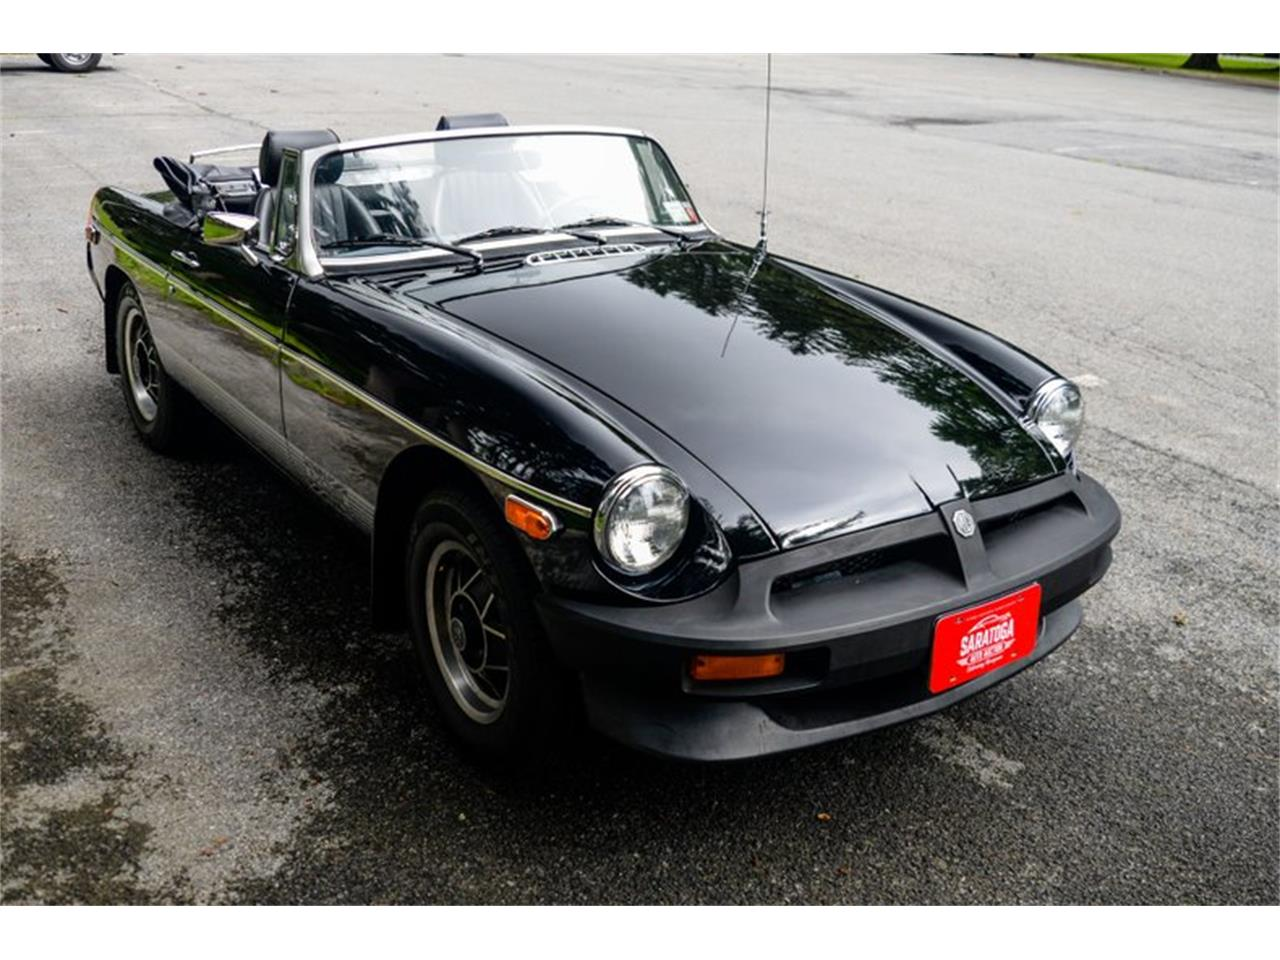 Large Picture of 1979 MGB located in Saratoga Springs New York Auction Vehicle - R18T